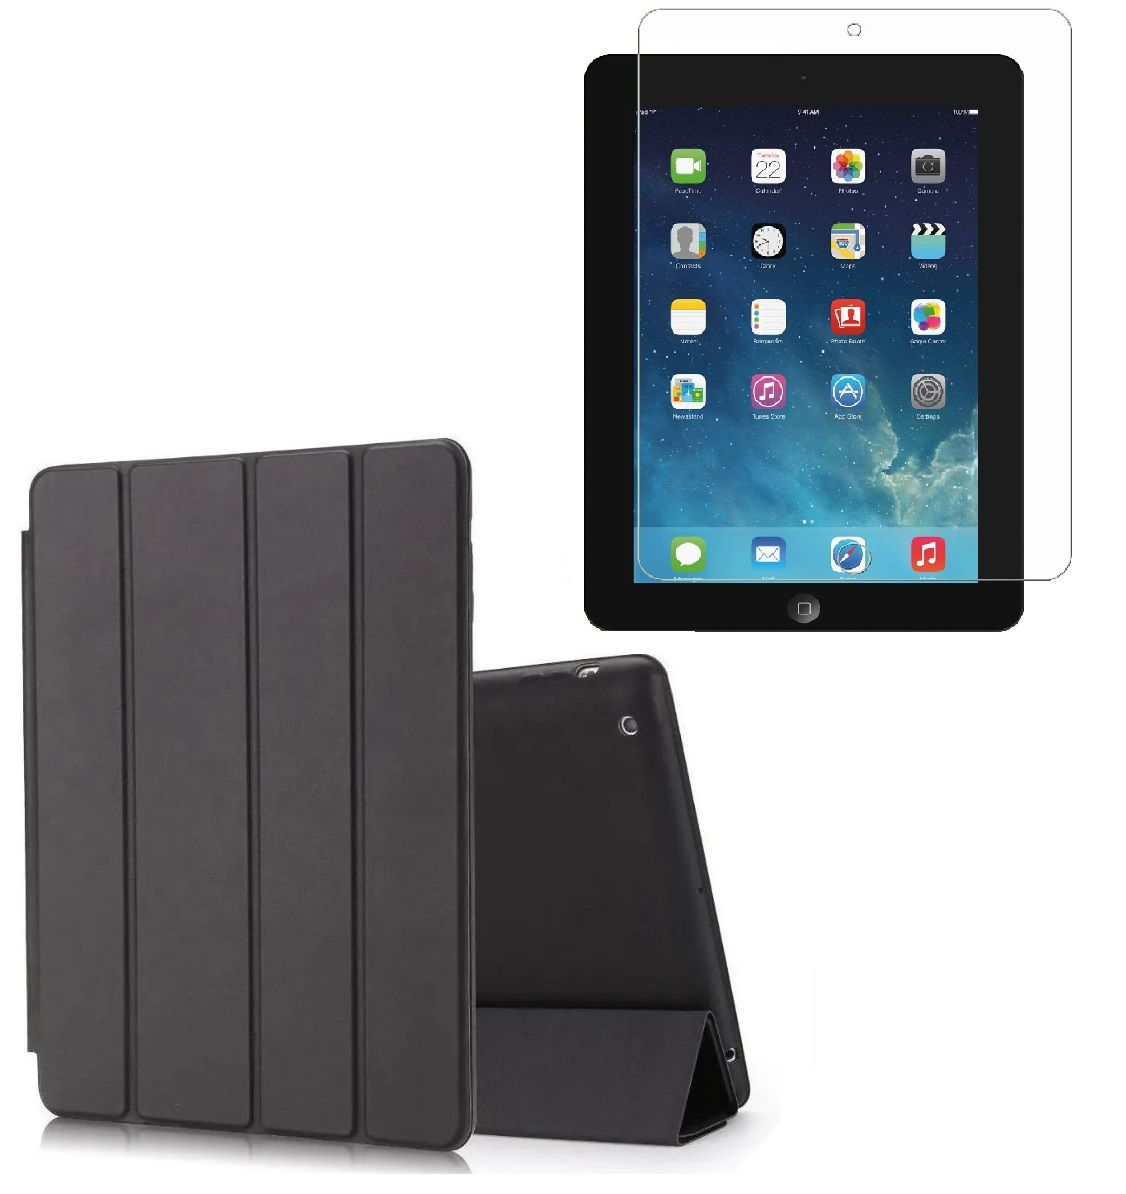 Kit Capa Ipad 2 3 4 Apple 2011/2012 Smart Case Premium + Vidro